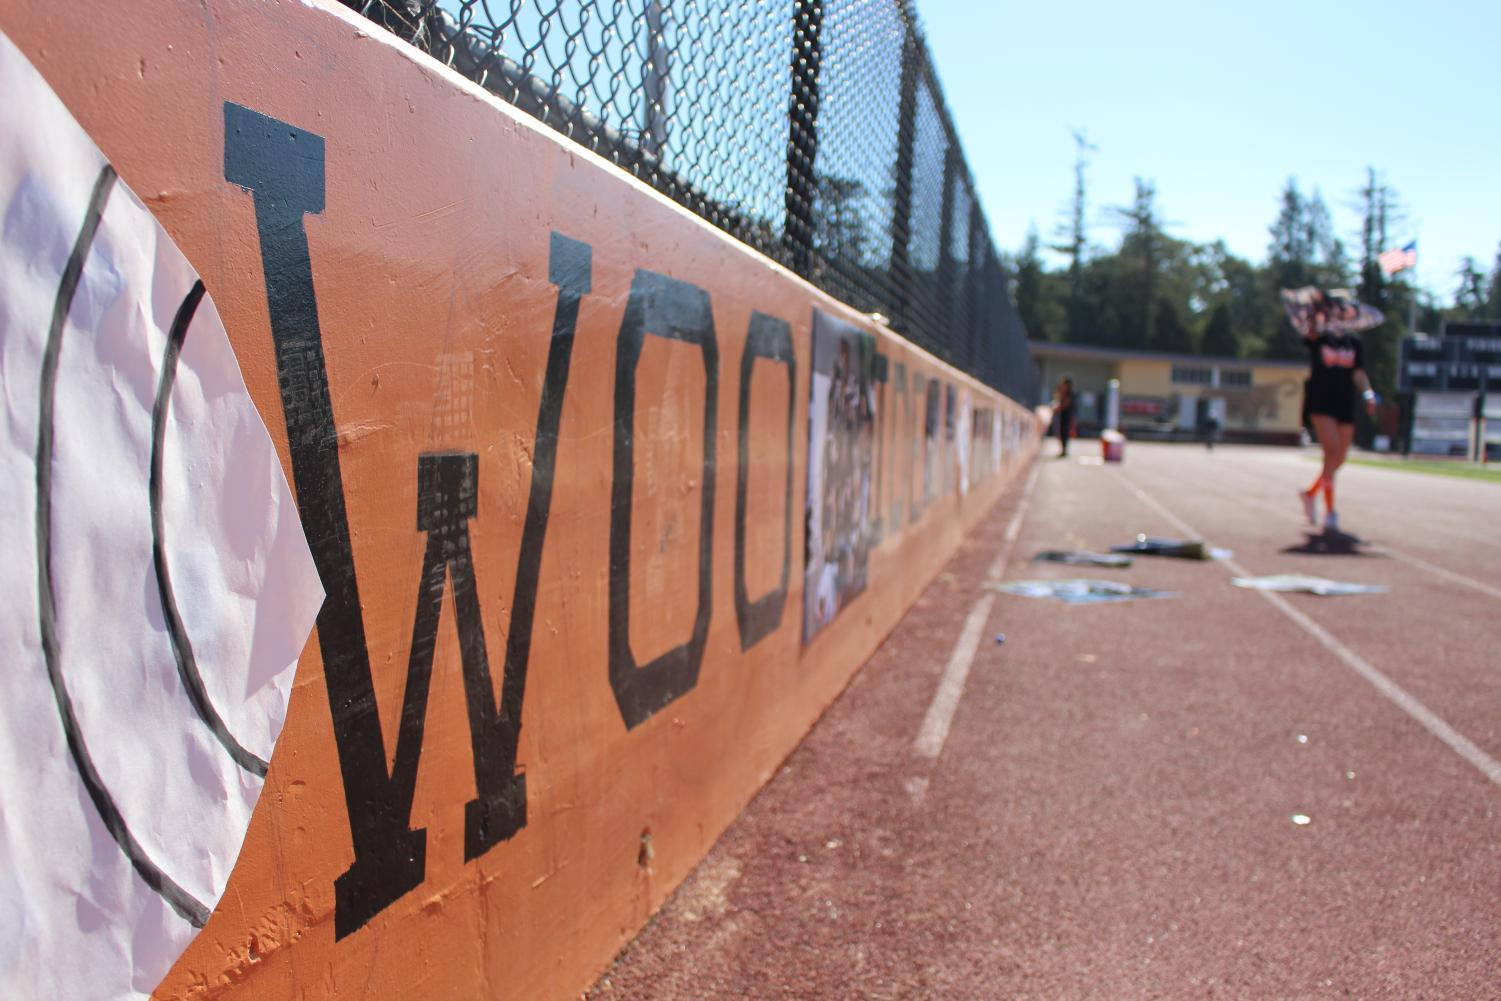 Woodside gets ready for an exciting homecoming week